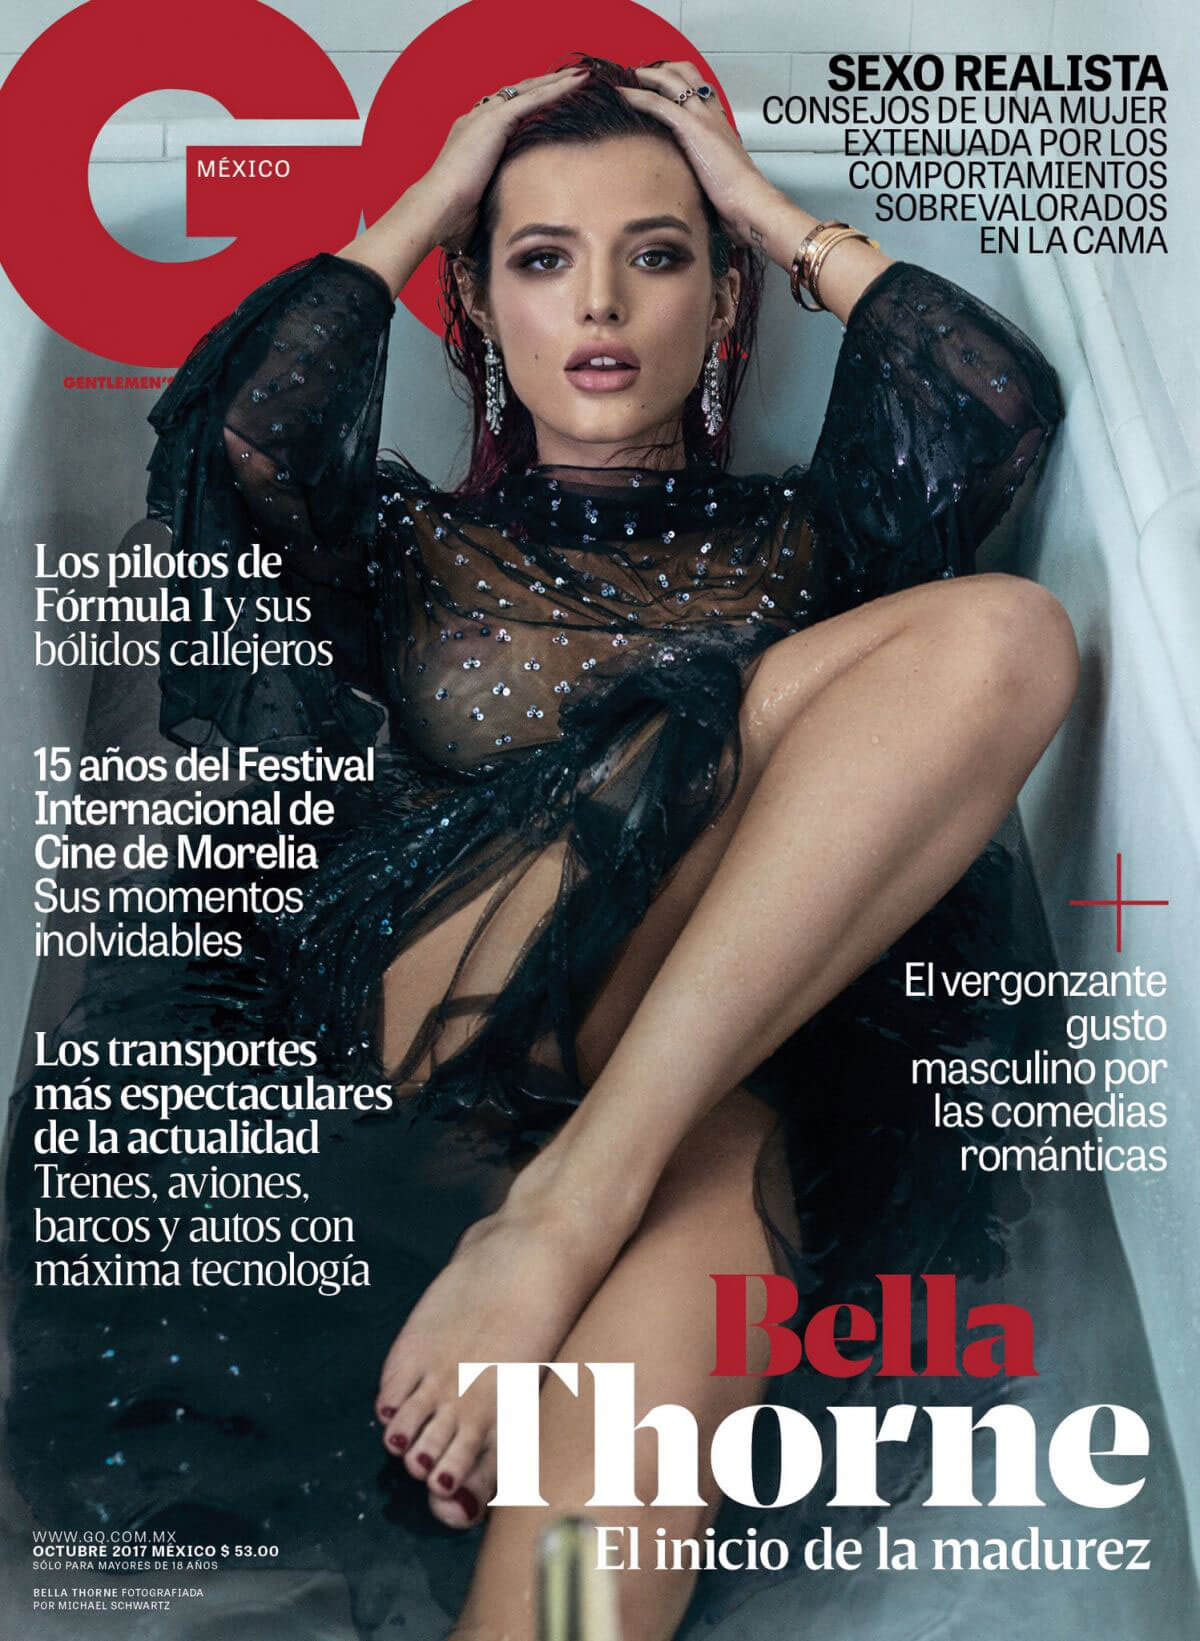 Bella Thorne Poses for GQ Mexico Magazine Photoshoot, October 2017